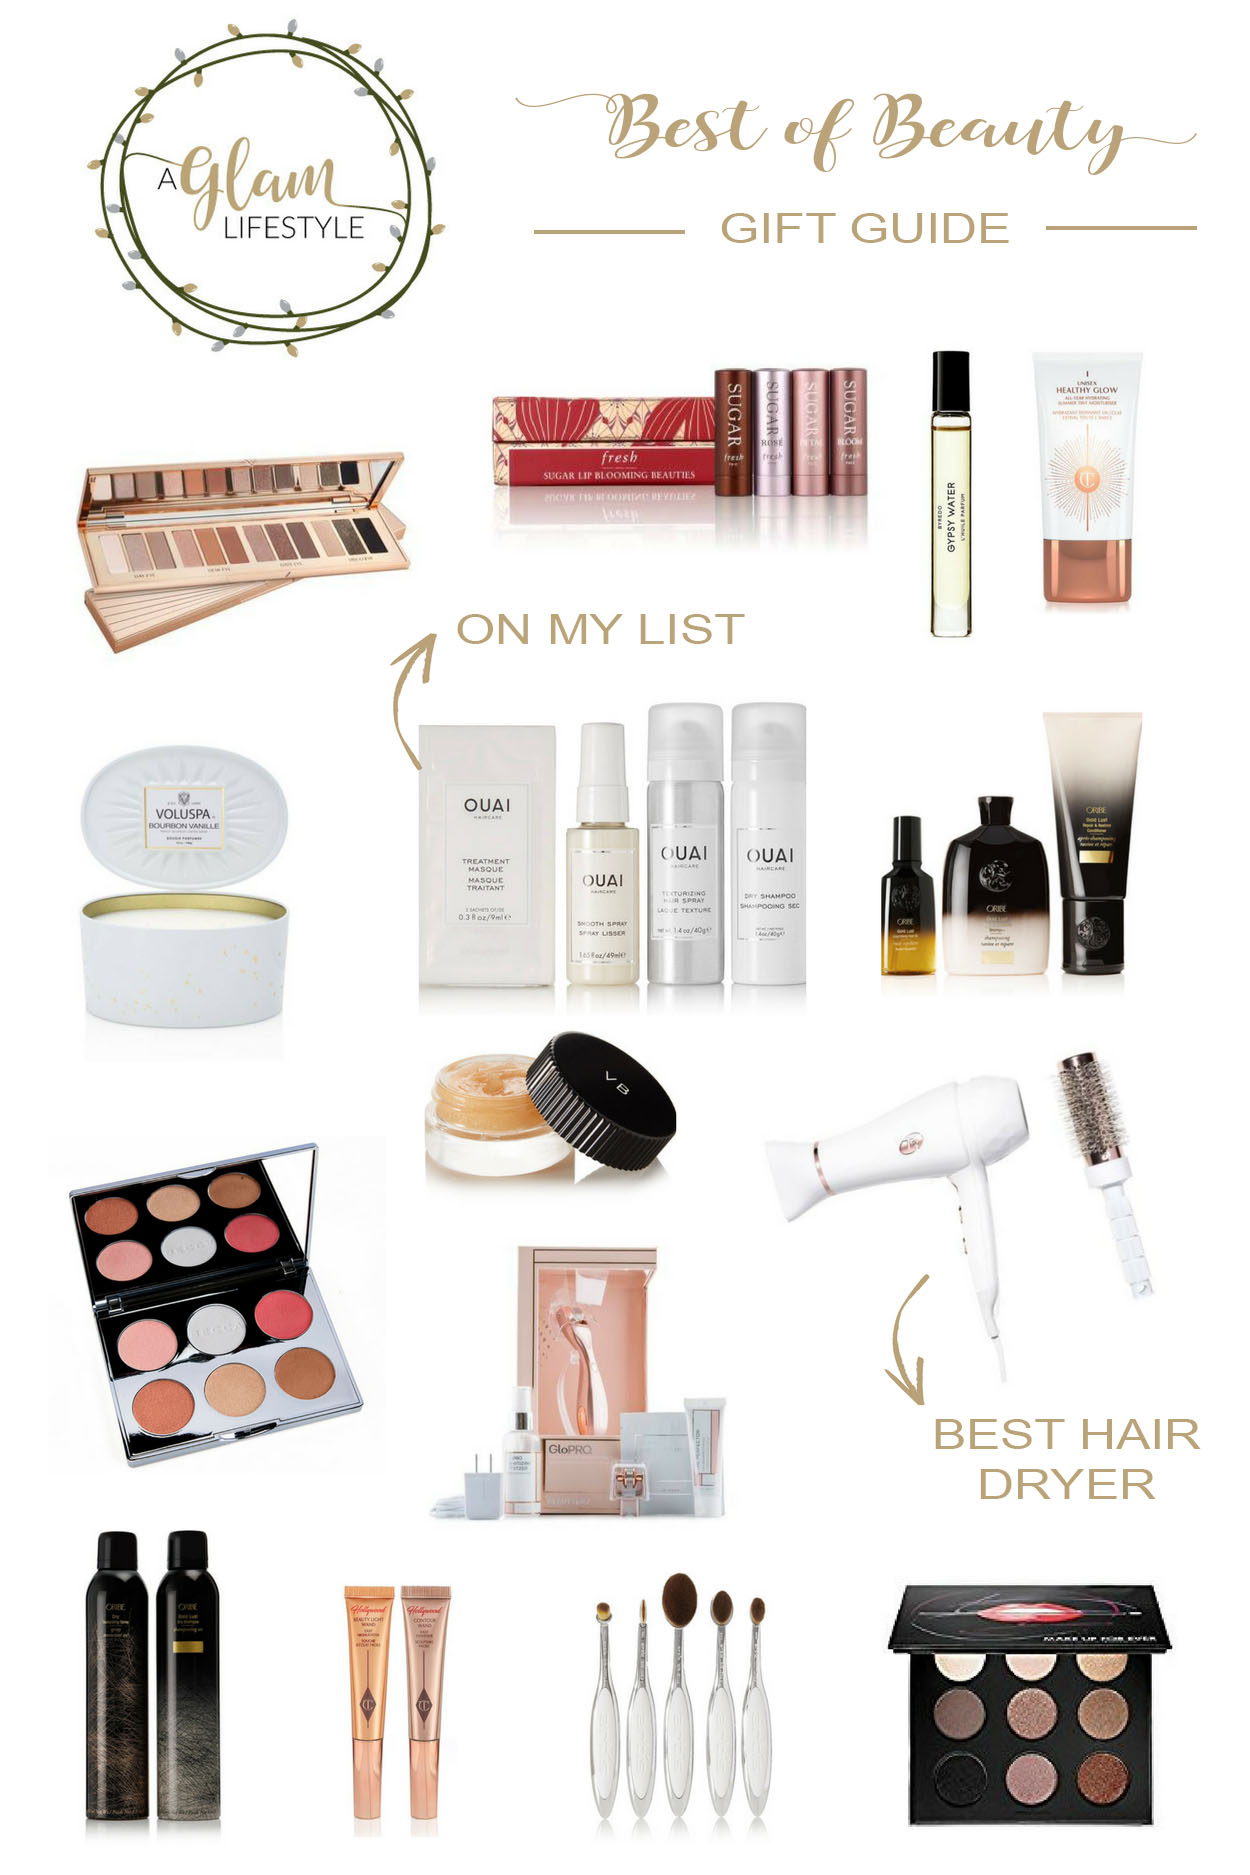 Amanda of A Glam Lifestyle shares her 2017 Best of Beauty gift guide